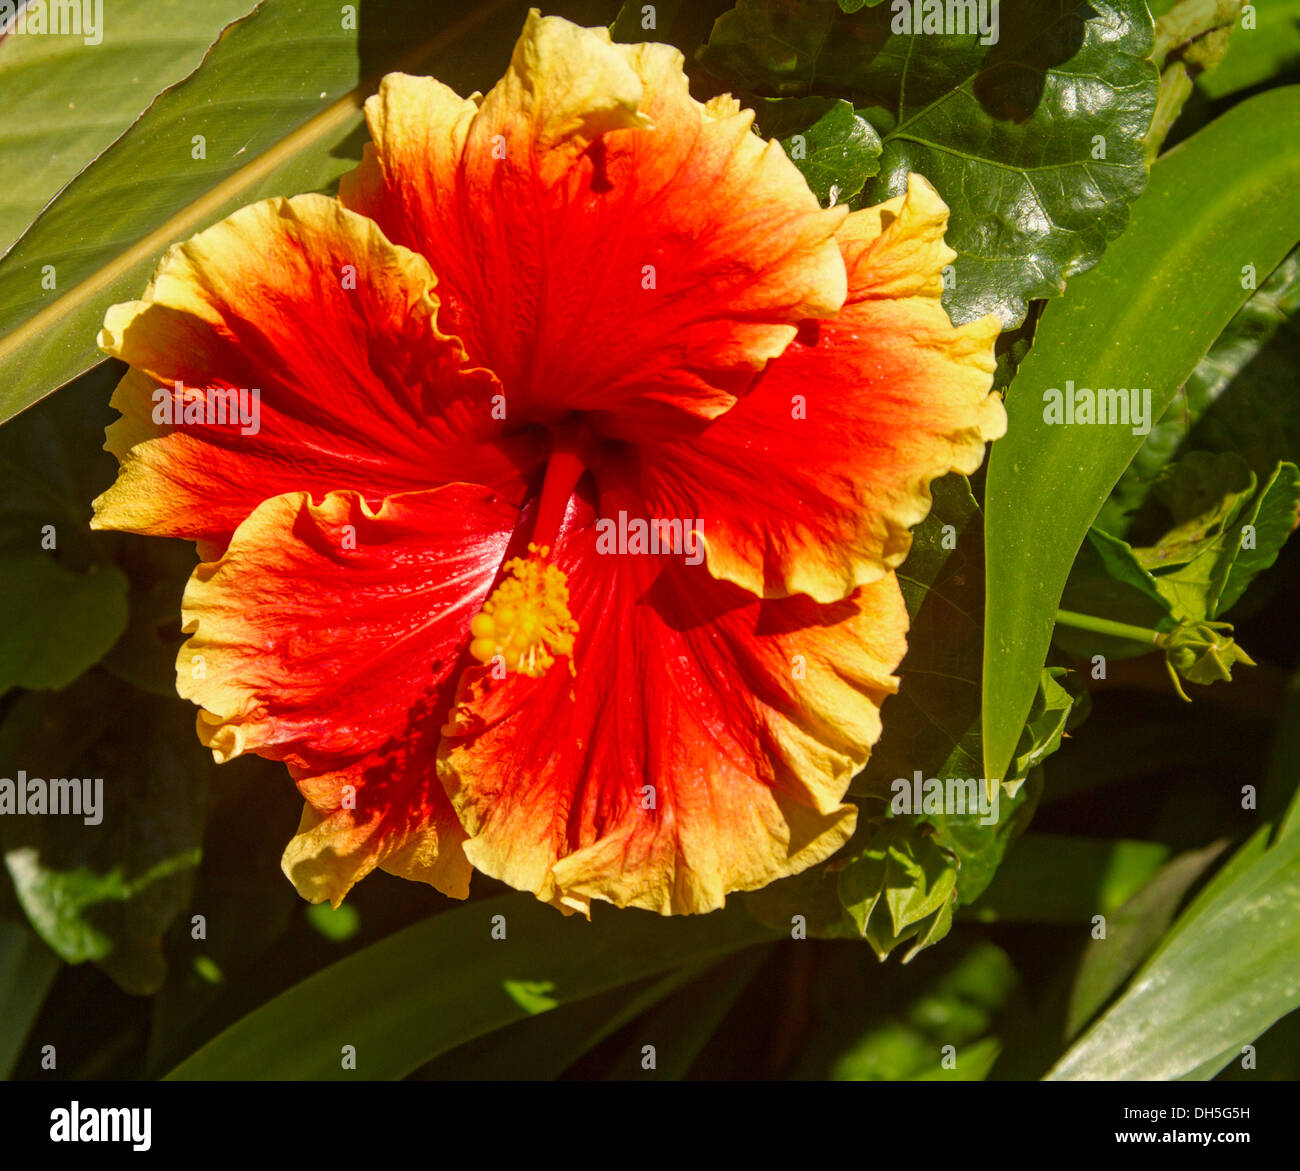 Spectacular Vivid Red Hawaiian Hibiscus Flower With Ruffled Edges